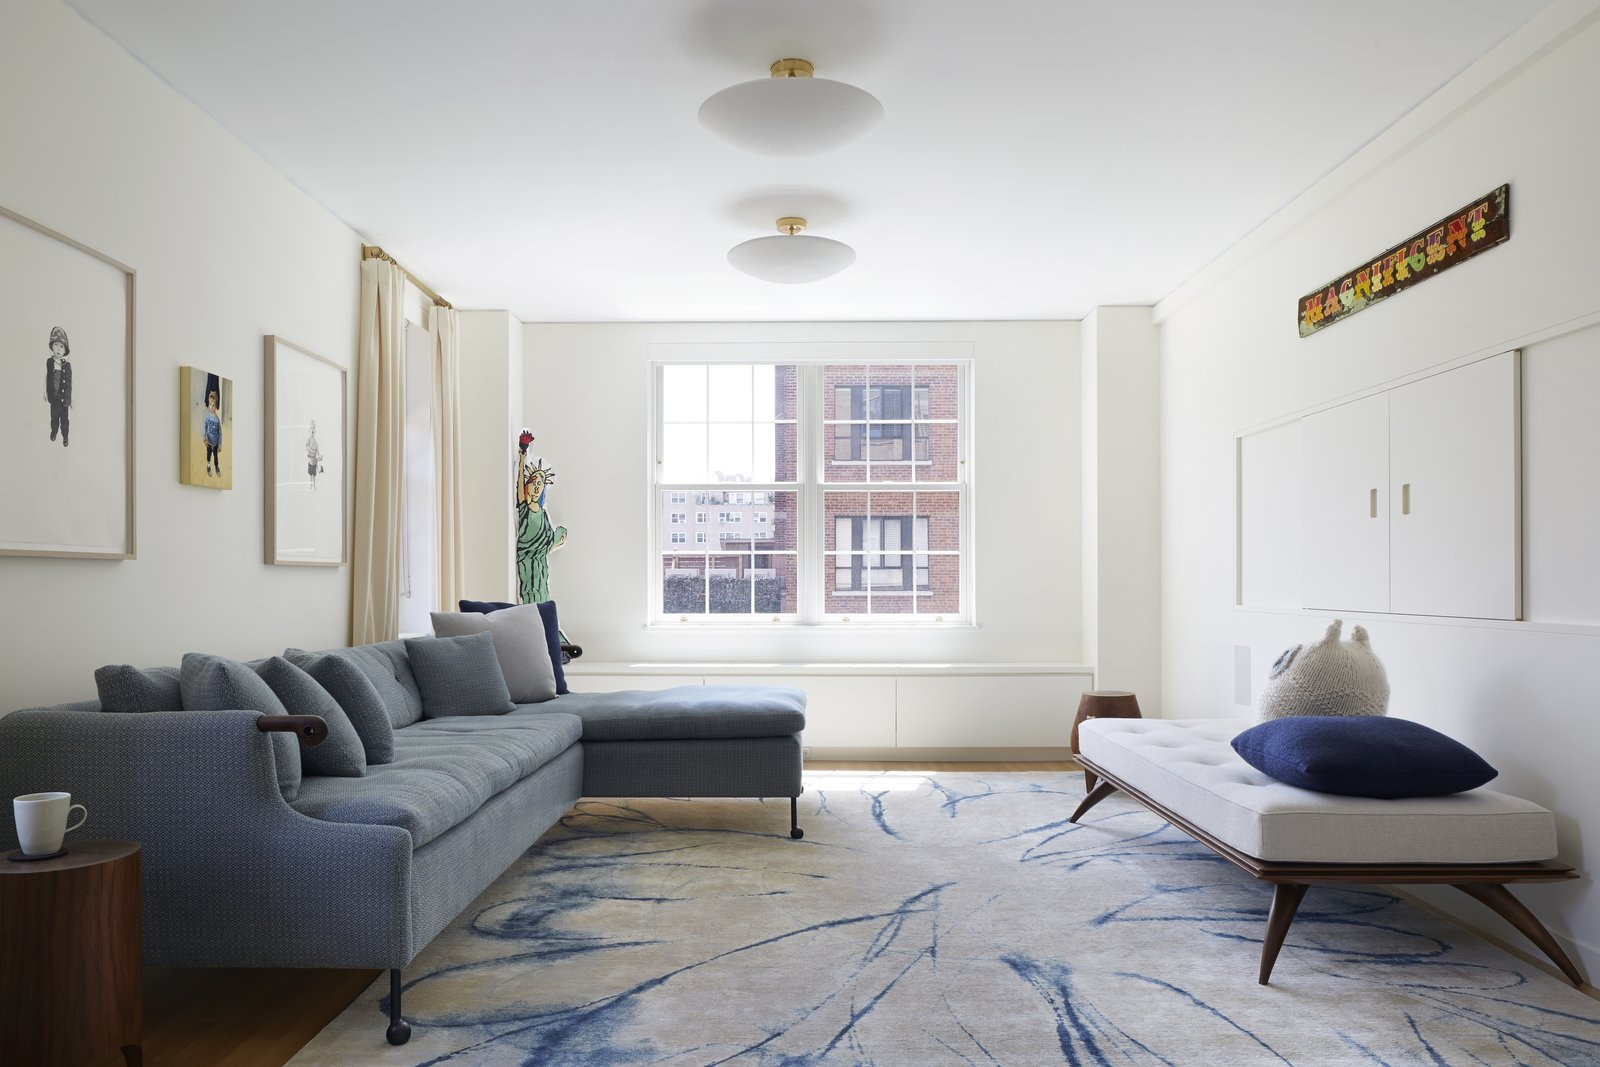 View from the entry to the Living Room.  Furniture by BDDW, Paul Mathieu and Kieran Kinsella.  The area rug is by Fort Street Studio.  The cast plaster ceiling fixtures are by Pulltab and Remains Lighting.  5th Avenue Residence by pulltab